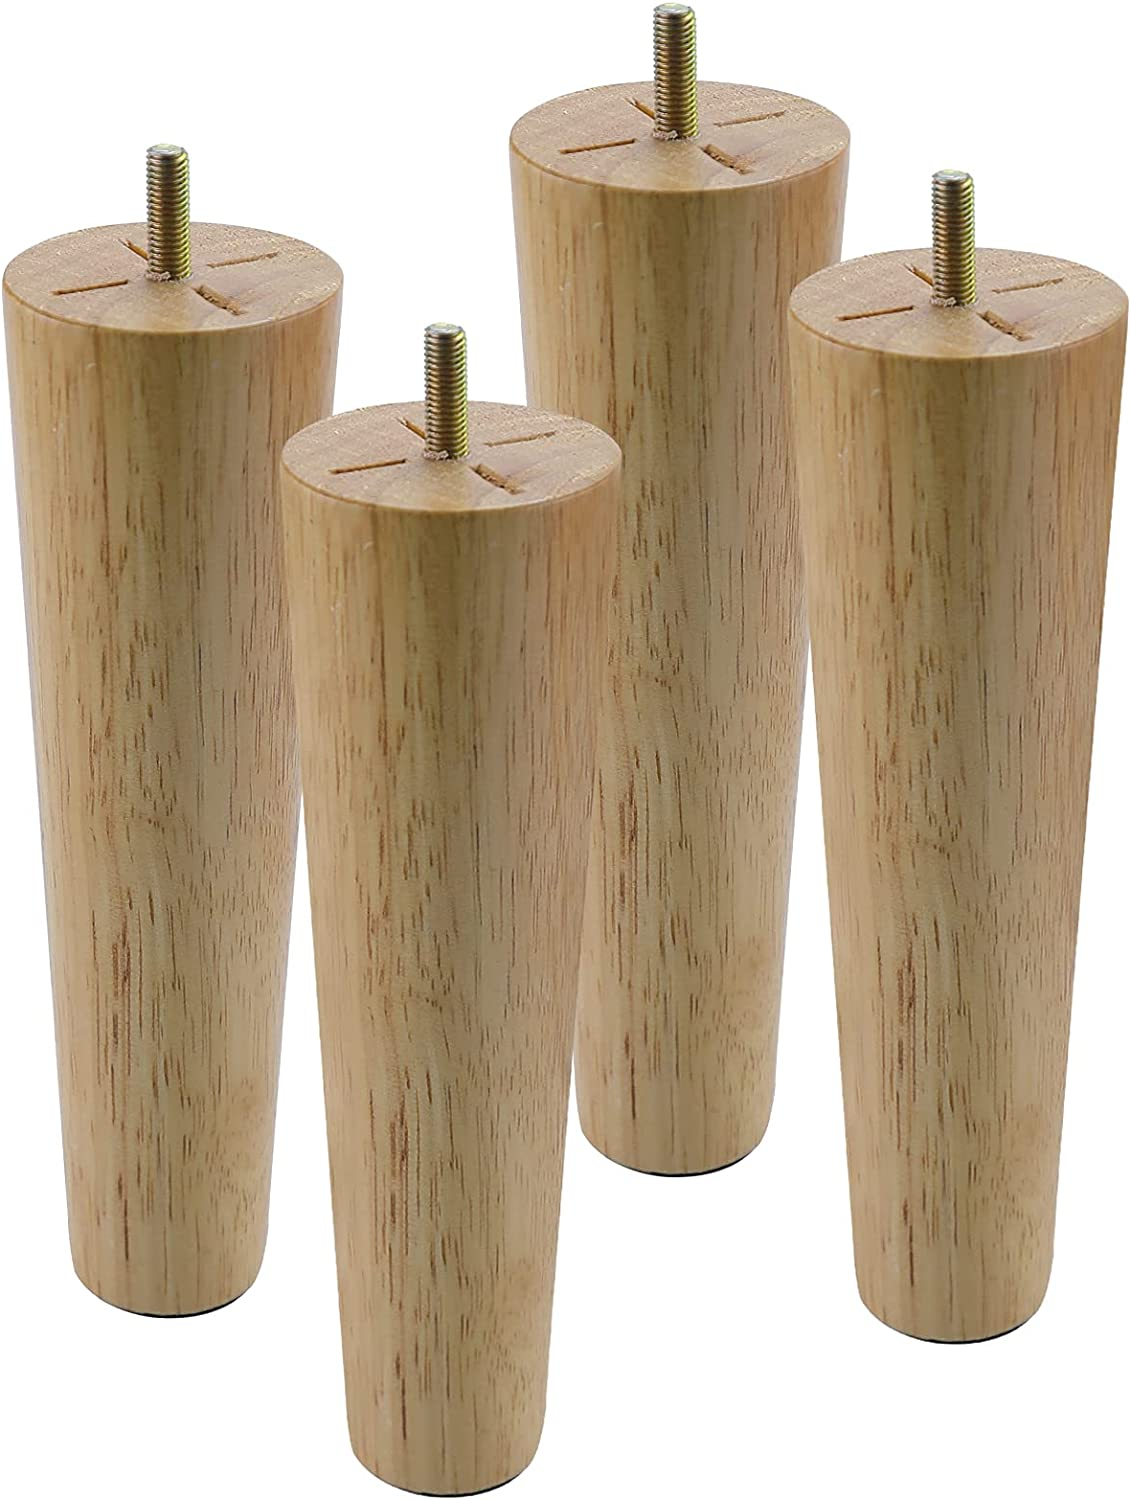 10 Inch Wooden Furniture Legs,Round Solid Wood Chair Legs for Furniture Feet with Pre-Drilled 5/16 Inch Bolt & Screws,Sofa Legs Replacement for Armchair Cabinet Dresser Ottoman Couch (Set of 4)